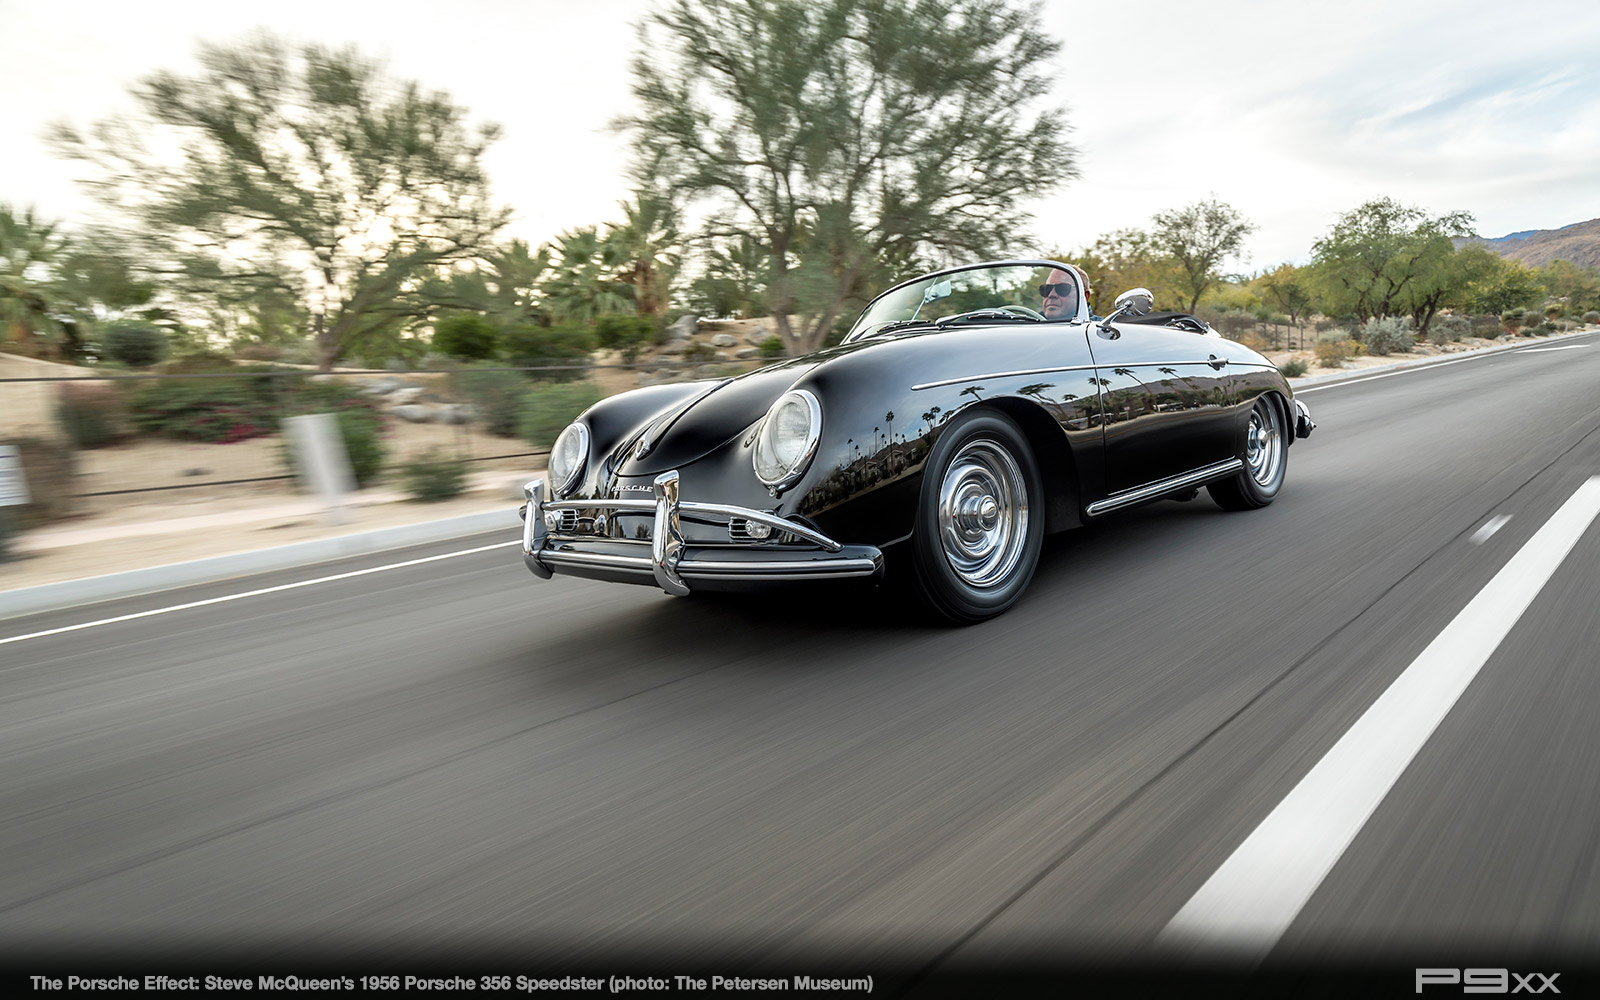 1956-Steve-McQueen-Chad-356-Speedster-Petersen-Automotive-Museum-The-Porsche-Effect-341